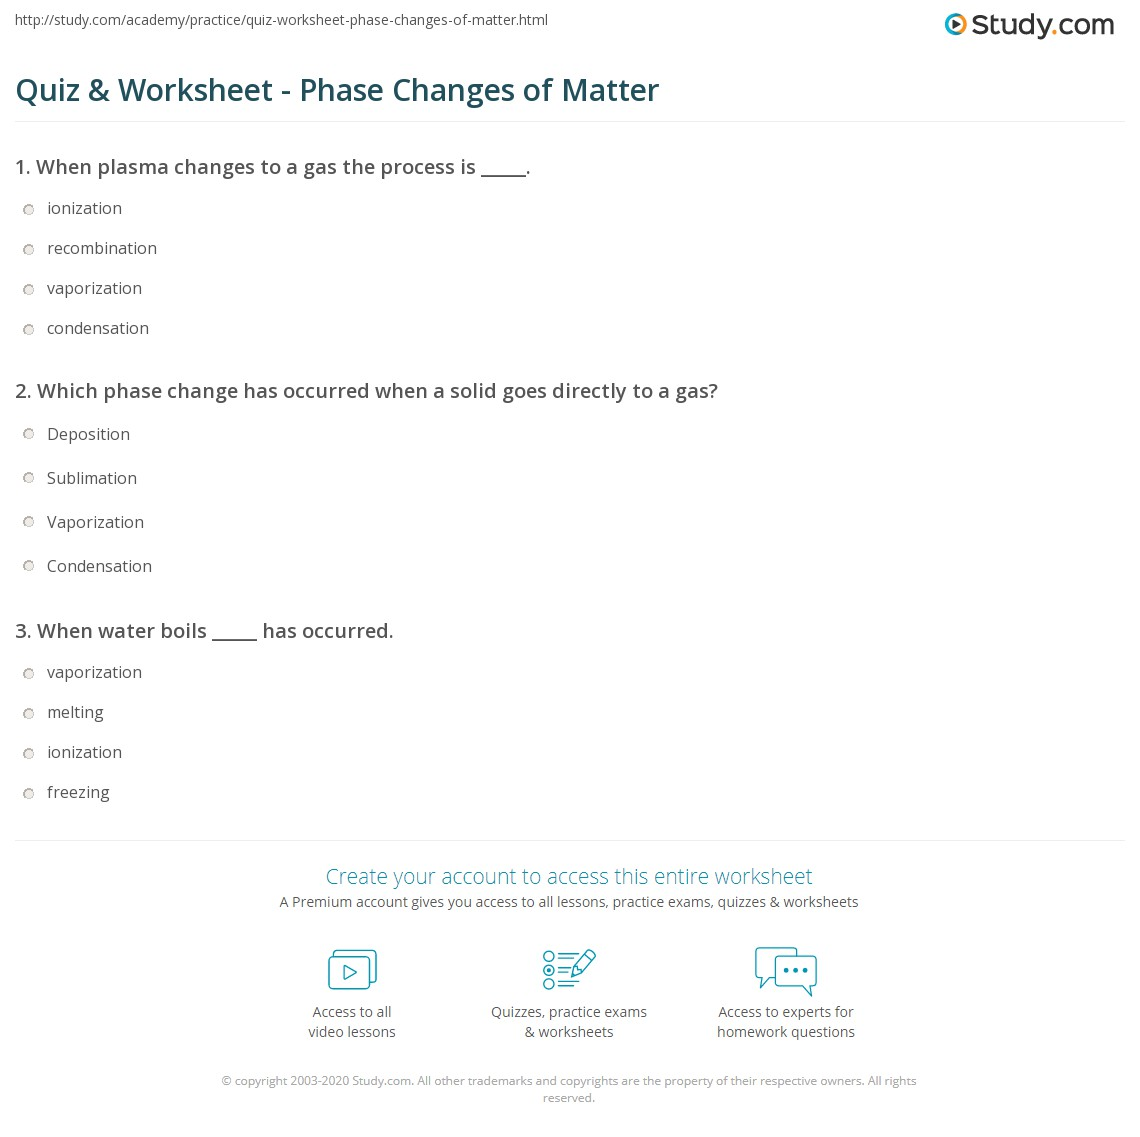 Quiz & Worksheet - Phase Changes of Matter | Study.com